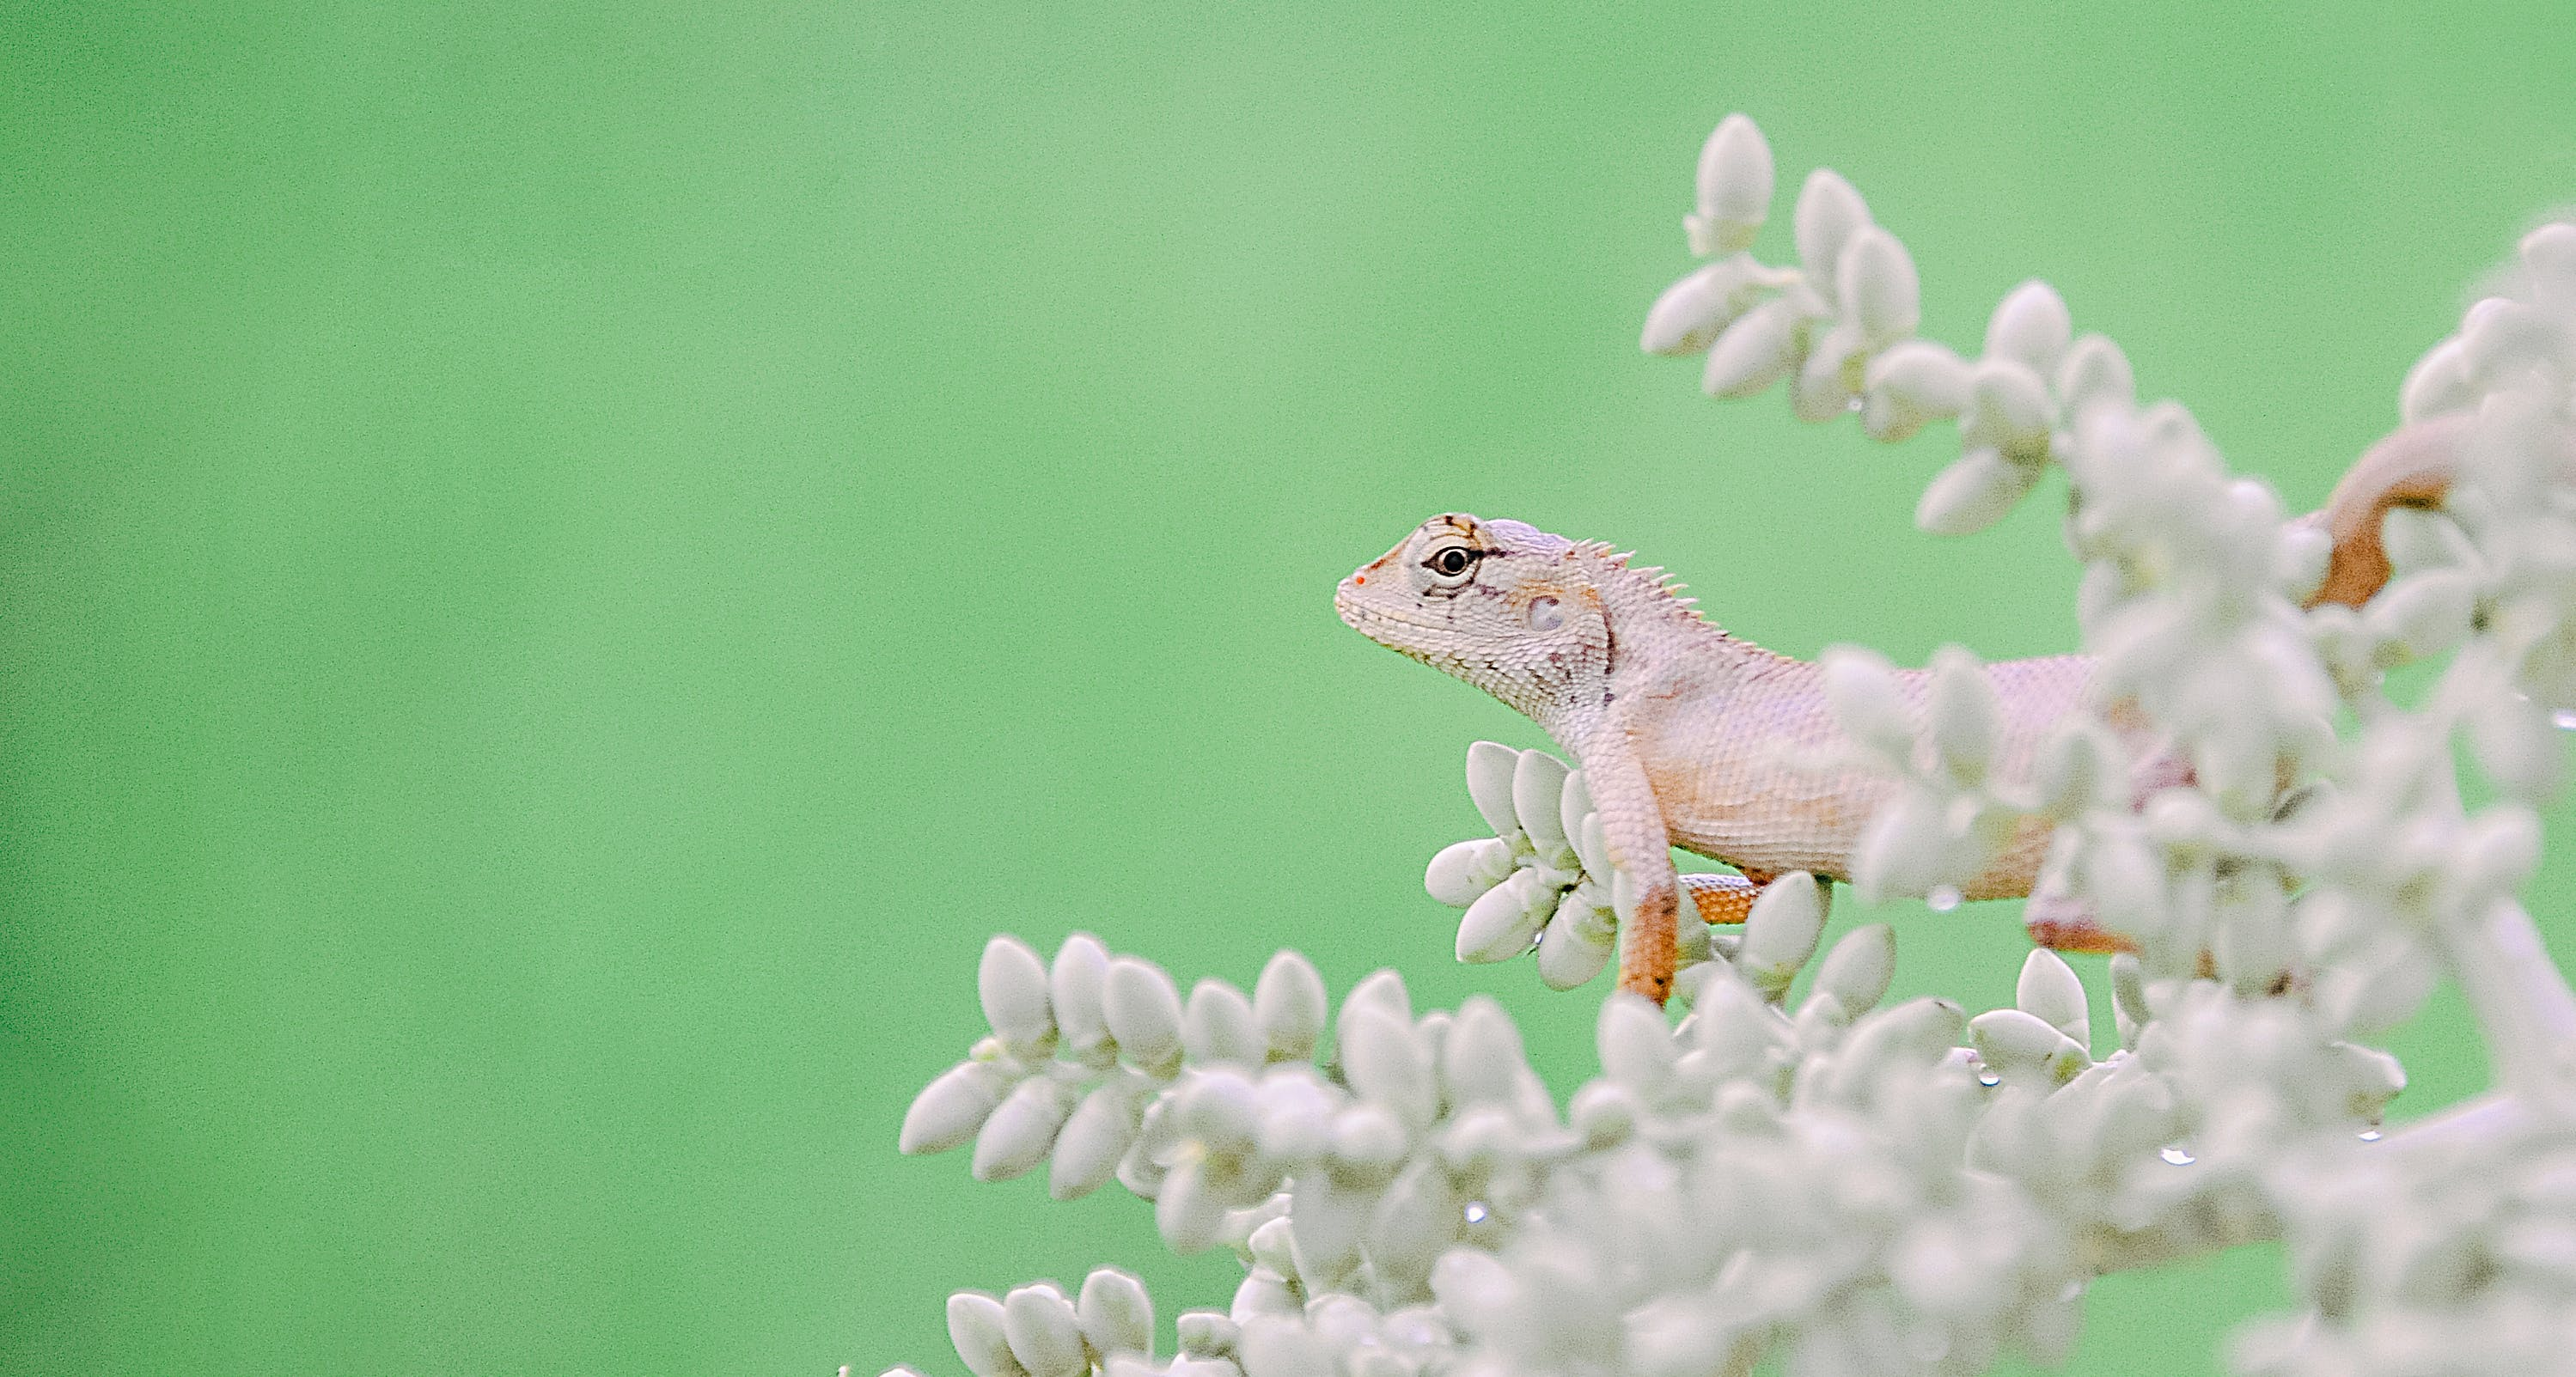 Gray Lizard on Green Plant